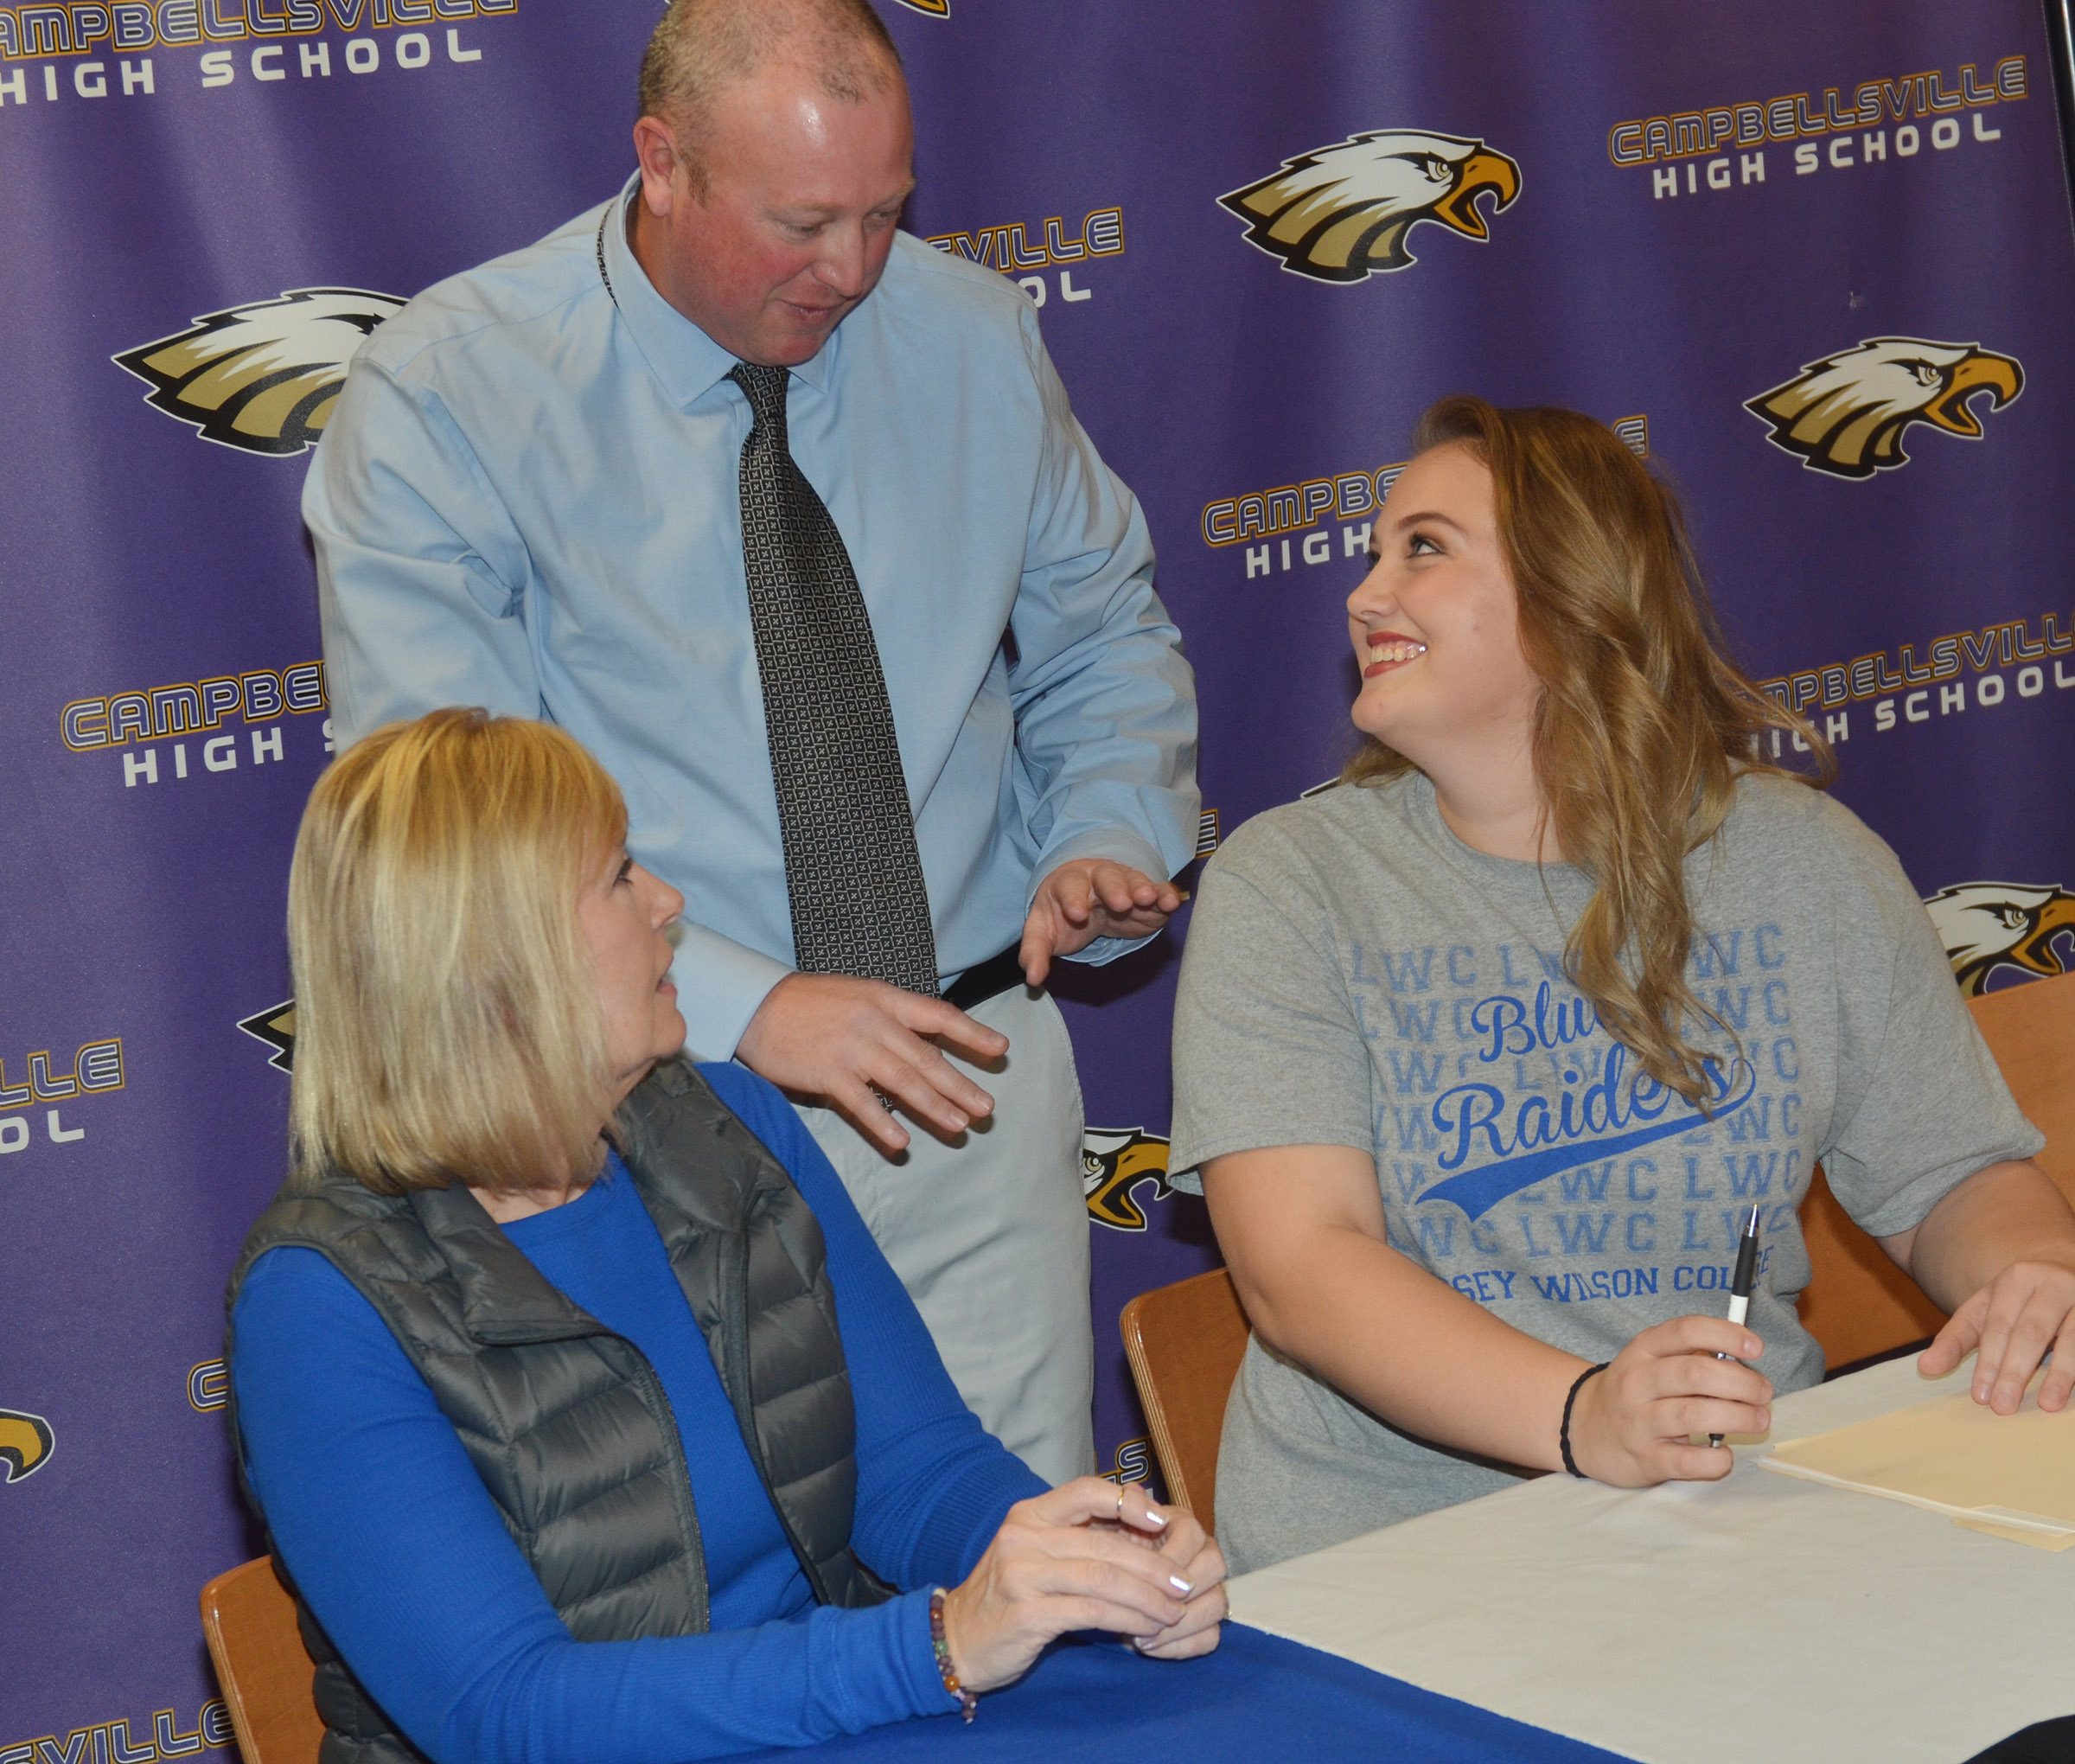 CHS senior Brenna Wethington has signed to continue her softball career at Lindsey Wilson College. She is pictured with her mother, Sheila Wethington, and her soon to be LWC softball coach David Dews.